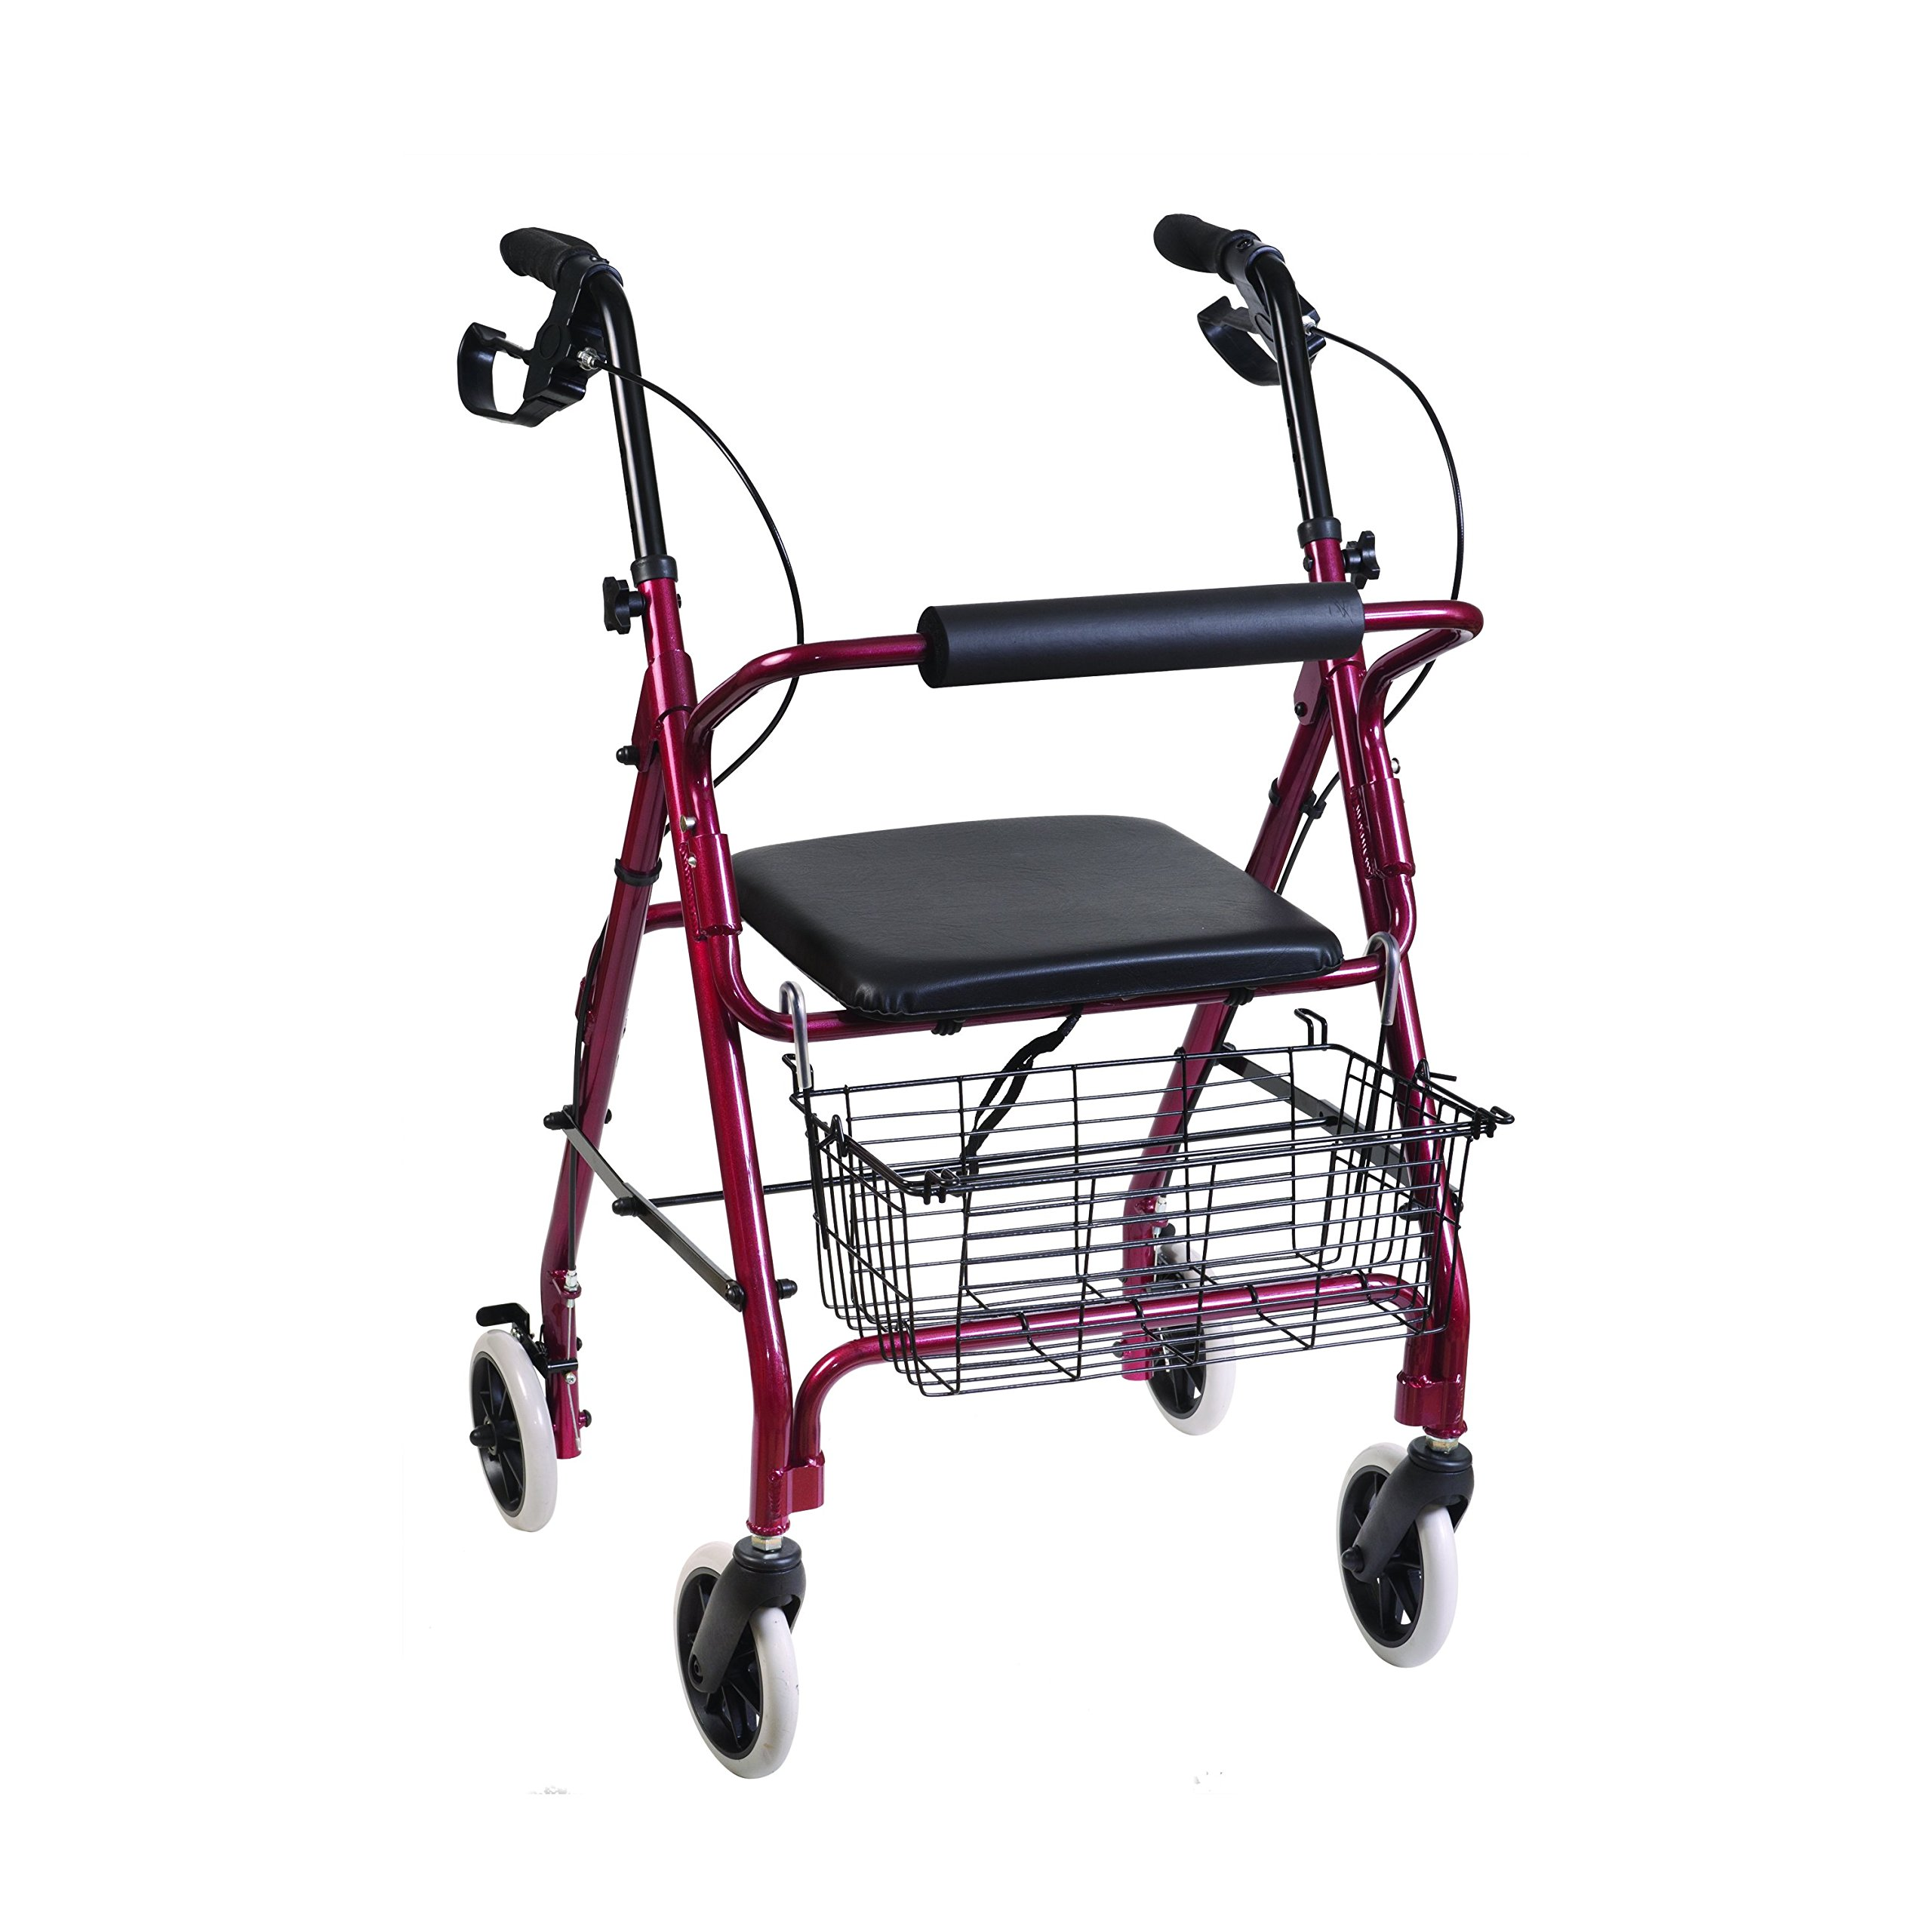 DMI Freedom Lightweight Folding Aluminum Rollator Walker with Adjustable Handle Height, Cushioned Flip Up Seat and Convenient Storage Basket, Burgundy by Duro-Med